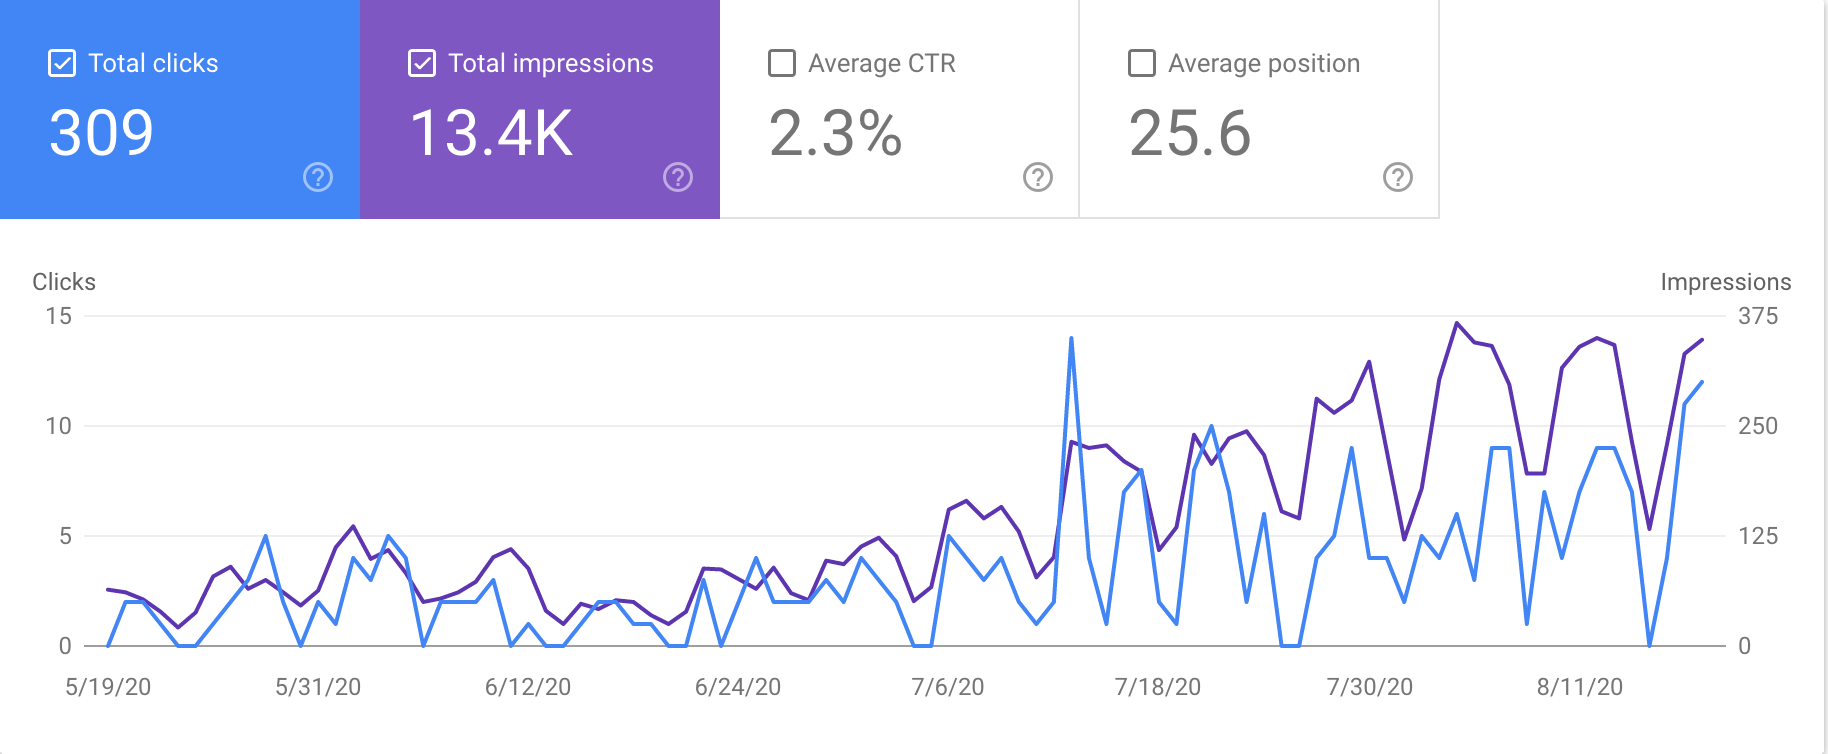 A graph from Google Search console showing the number of clicks and impressions for the last 3 months